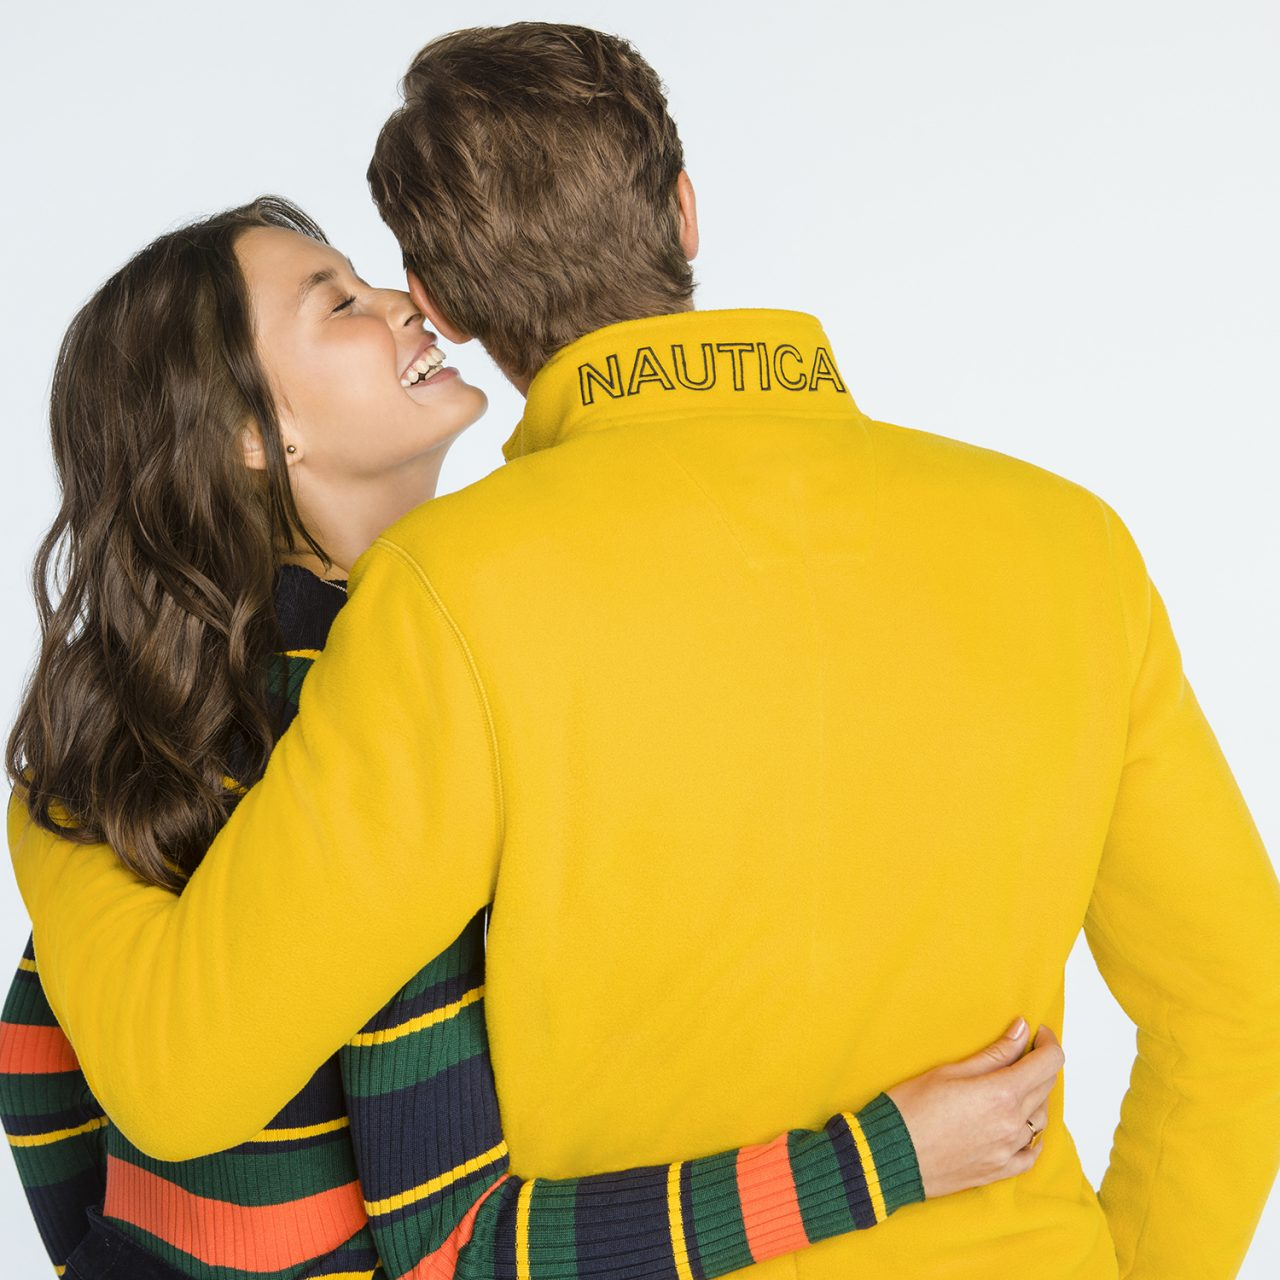 Nautica Holiday Campaign 3 web